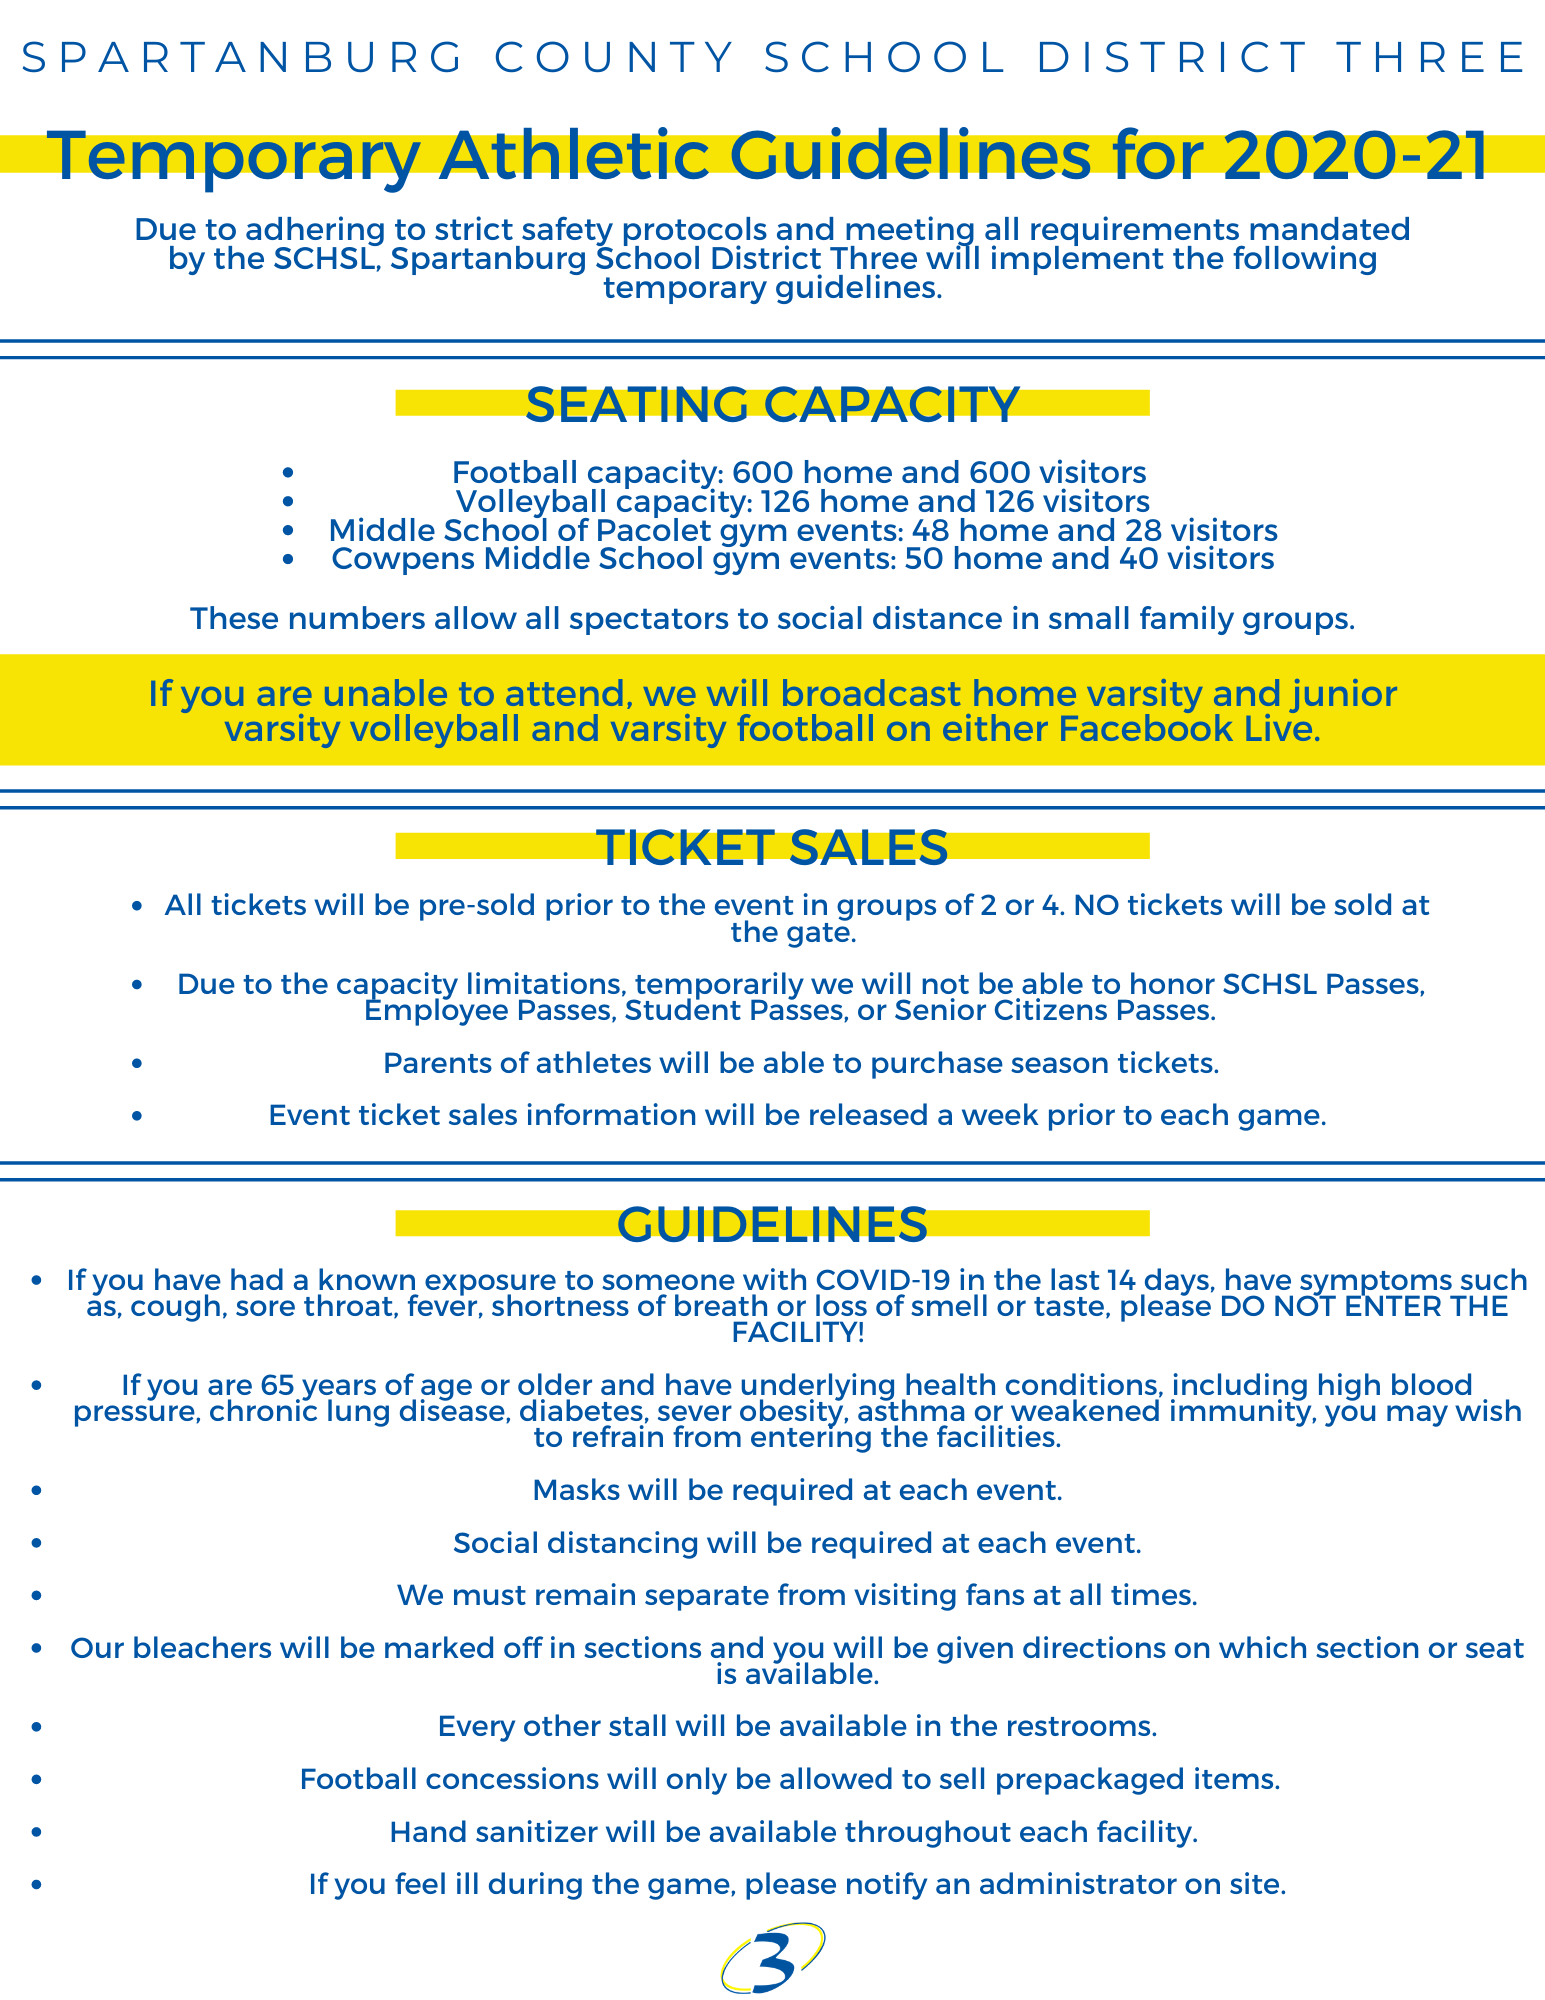 Due to adhering to strict safety protocols and meeting all requirements mandated by the SCHSL, Spartanburg School District Three will implement the following temporary guidelines. Seating Capacity •	Football Capacity: 600 Home and 600 Visitors •	Volleyball Capacity: 126 Home and 126 Visitors •	Middle School of Pacolet gym events: 48 Home and 28 Visitors •	Cowpens Middle School gym events: 50 Home and 40 Visitors If you are unable to attend, we will broadcast home varsity and junior varsity volleyball and varsity football on either Facebook live or YouTube.   Ticket Sales •	All tickets will be pre-sold prior to the event in groups of 2 or 4. NO tickets will be sold at the gate.  •	Due to the capacity limitations, temporarily we will not be able to honor SCHSL Passes, Employee Passes or Senior Citizens Passes.   •	Parents of athletes will be able to purchase season tickets.    •	Event tickets  Guidelines •	If you have had had a known exposure to someone with COVID-19 in the last 14 days, have symptoms such as, cough, sore throat, fever, shortness of breath or loss of smell or taste please DO NOT ENTER THE FACILITY! •	If you are 65 years of age or older and have underlying health conditions including high blood pressure, chronic lung disease, diabetes, sever obesity, asthma or weakened immunity, you may wish to refrain from entering the facilities •	Mask will be required at each event. •	Social Distancing will be required at each event. •	We must remain separate from visiting fans at all times. •	Our bleachers will be marked off in sections and you will be given directions on which section or seat is available. •	Every other stall will be available in the restrooms. •	Football Concessions will only be allowed to sale prepackaged items.   •	Hand sanitizer will be available throughout each facility •	If you feel ill during the contest, please notify an administrator on site.